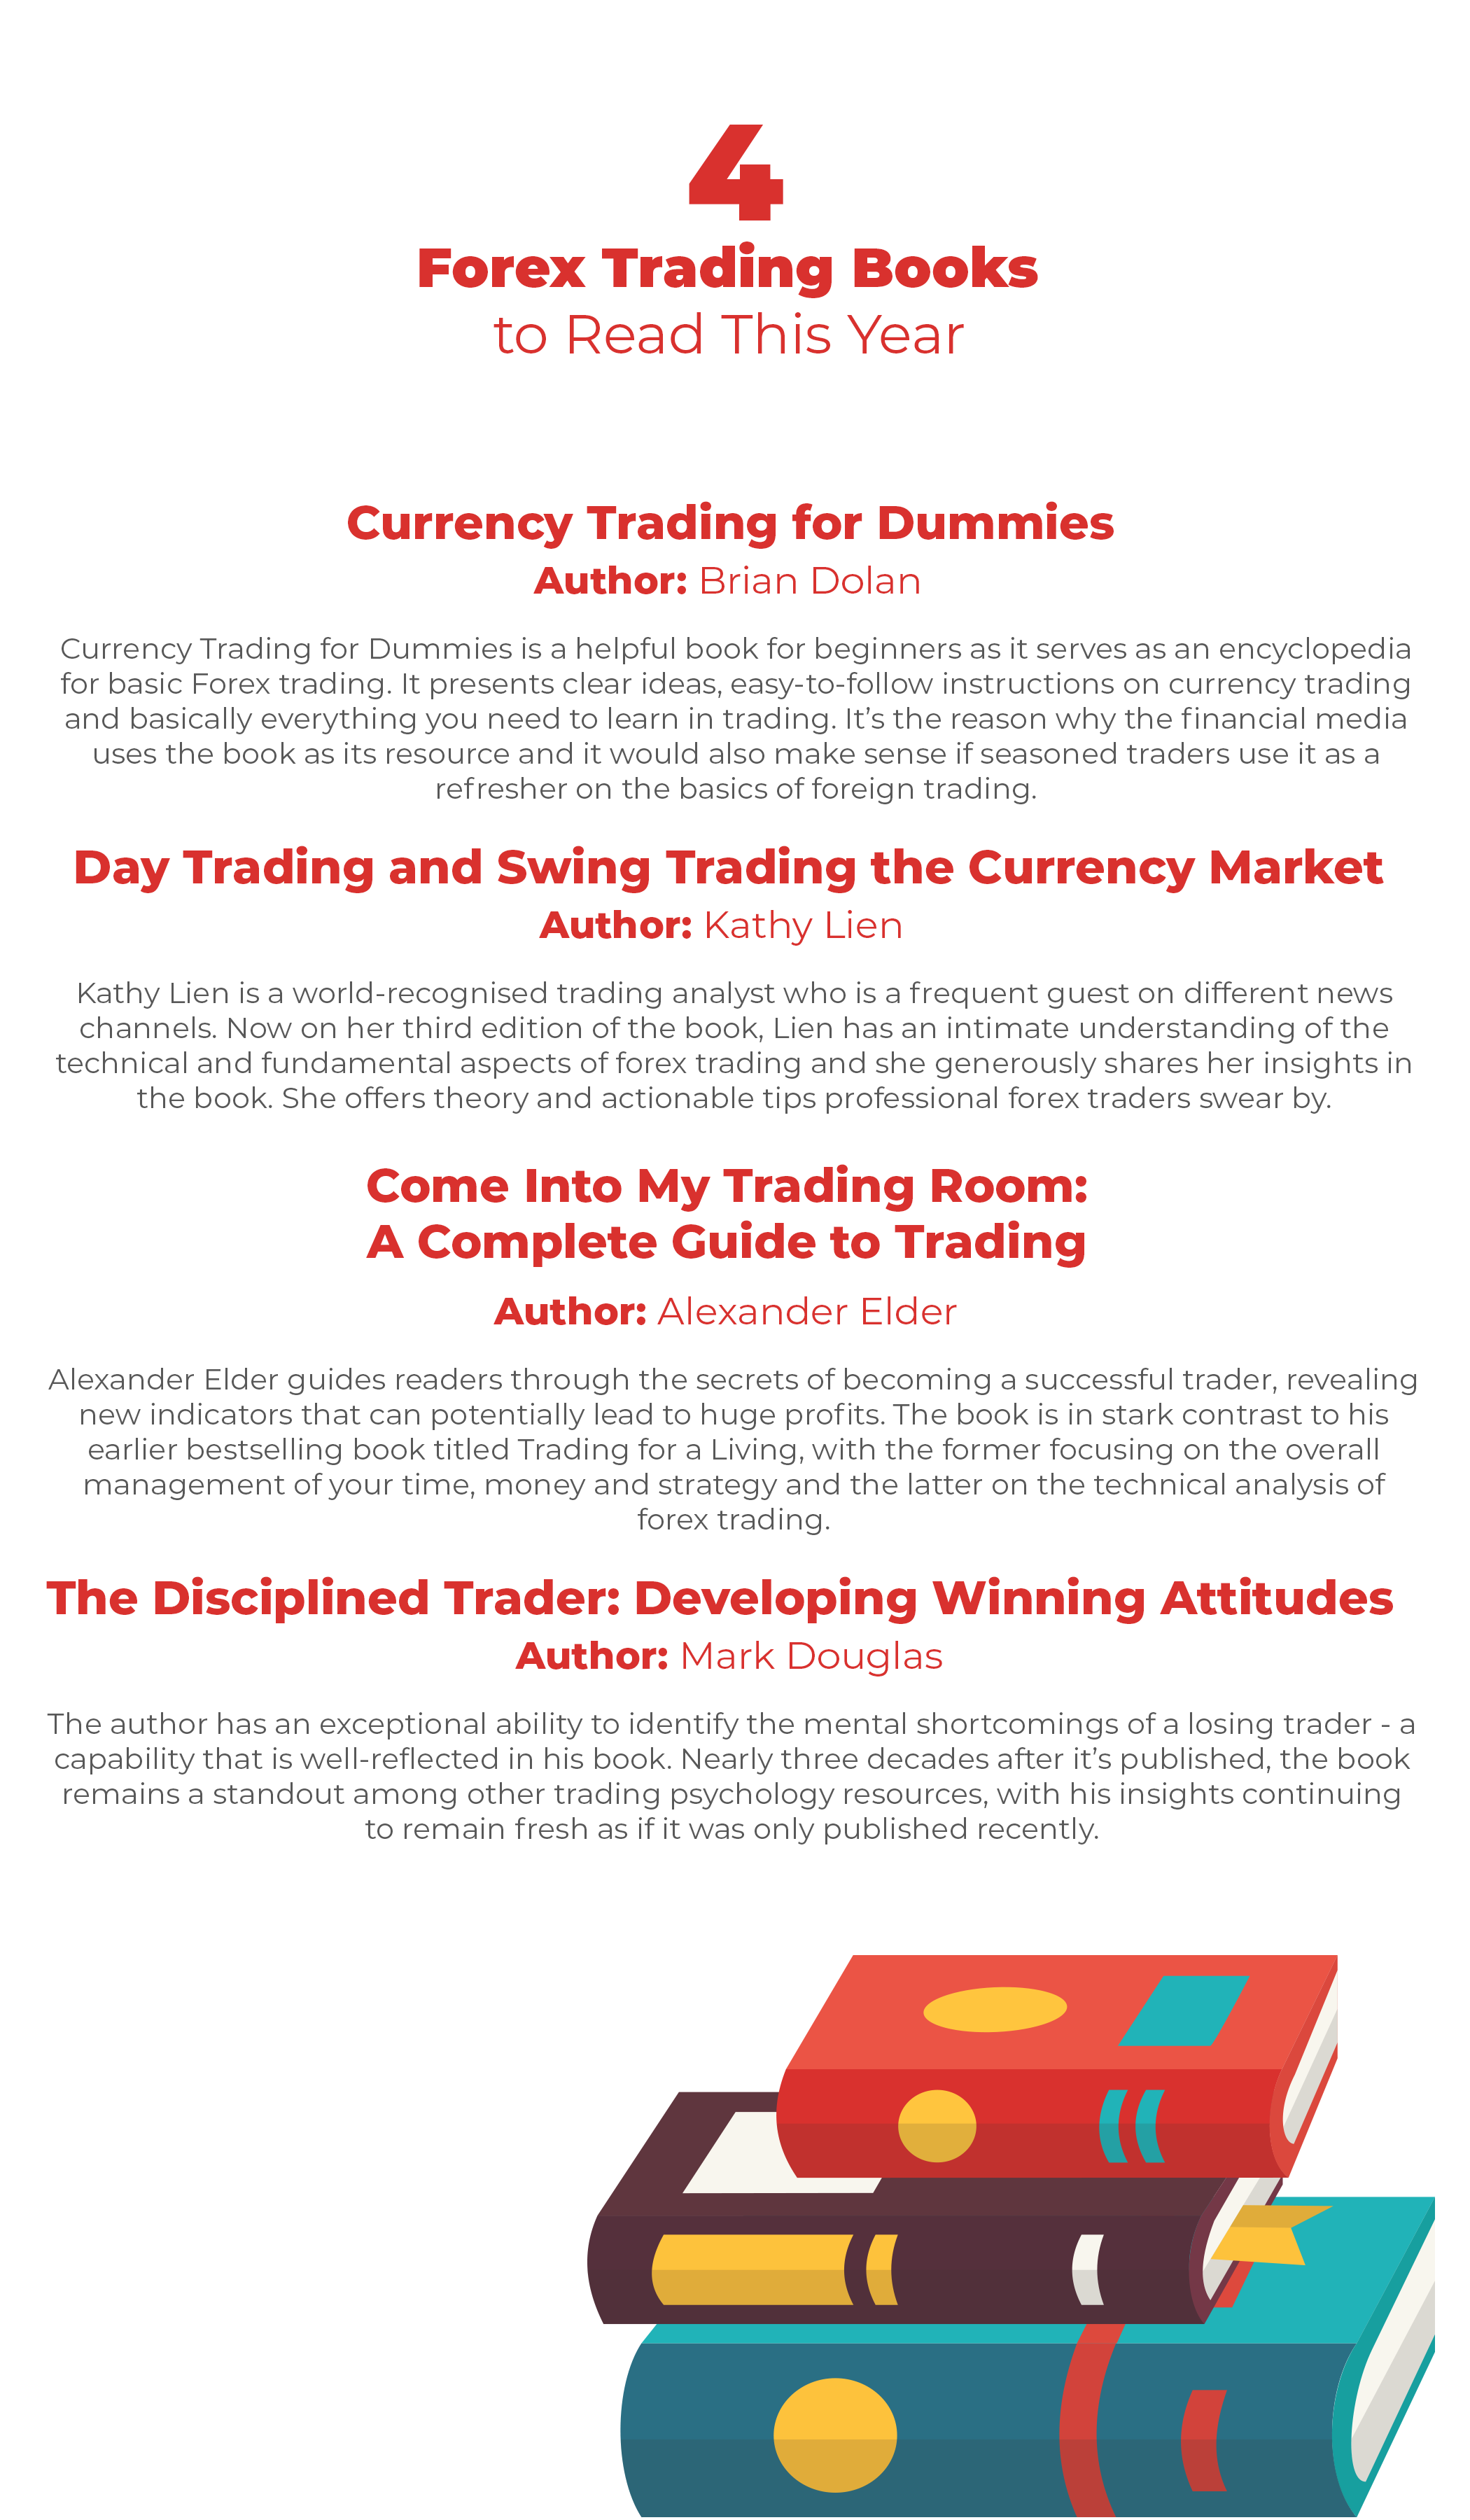 If You Re Looking For Some Trading Books To Read For The Year We Listed A Handful Of Forex Trading Books That We Believe Are Forex Trading Books To Read Forex